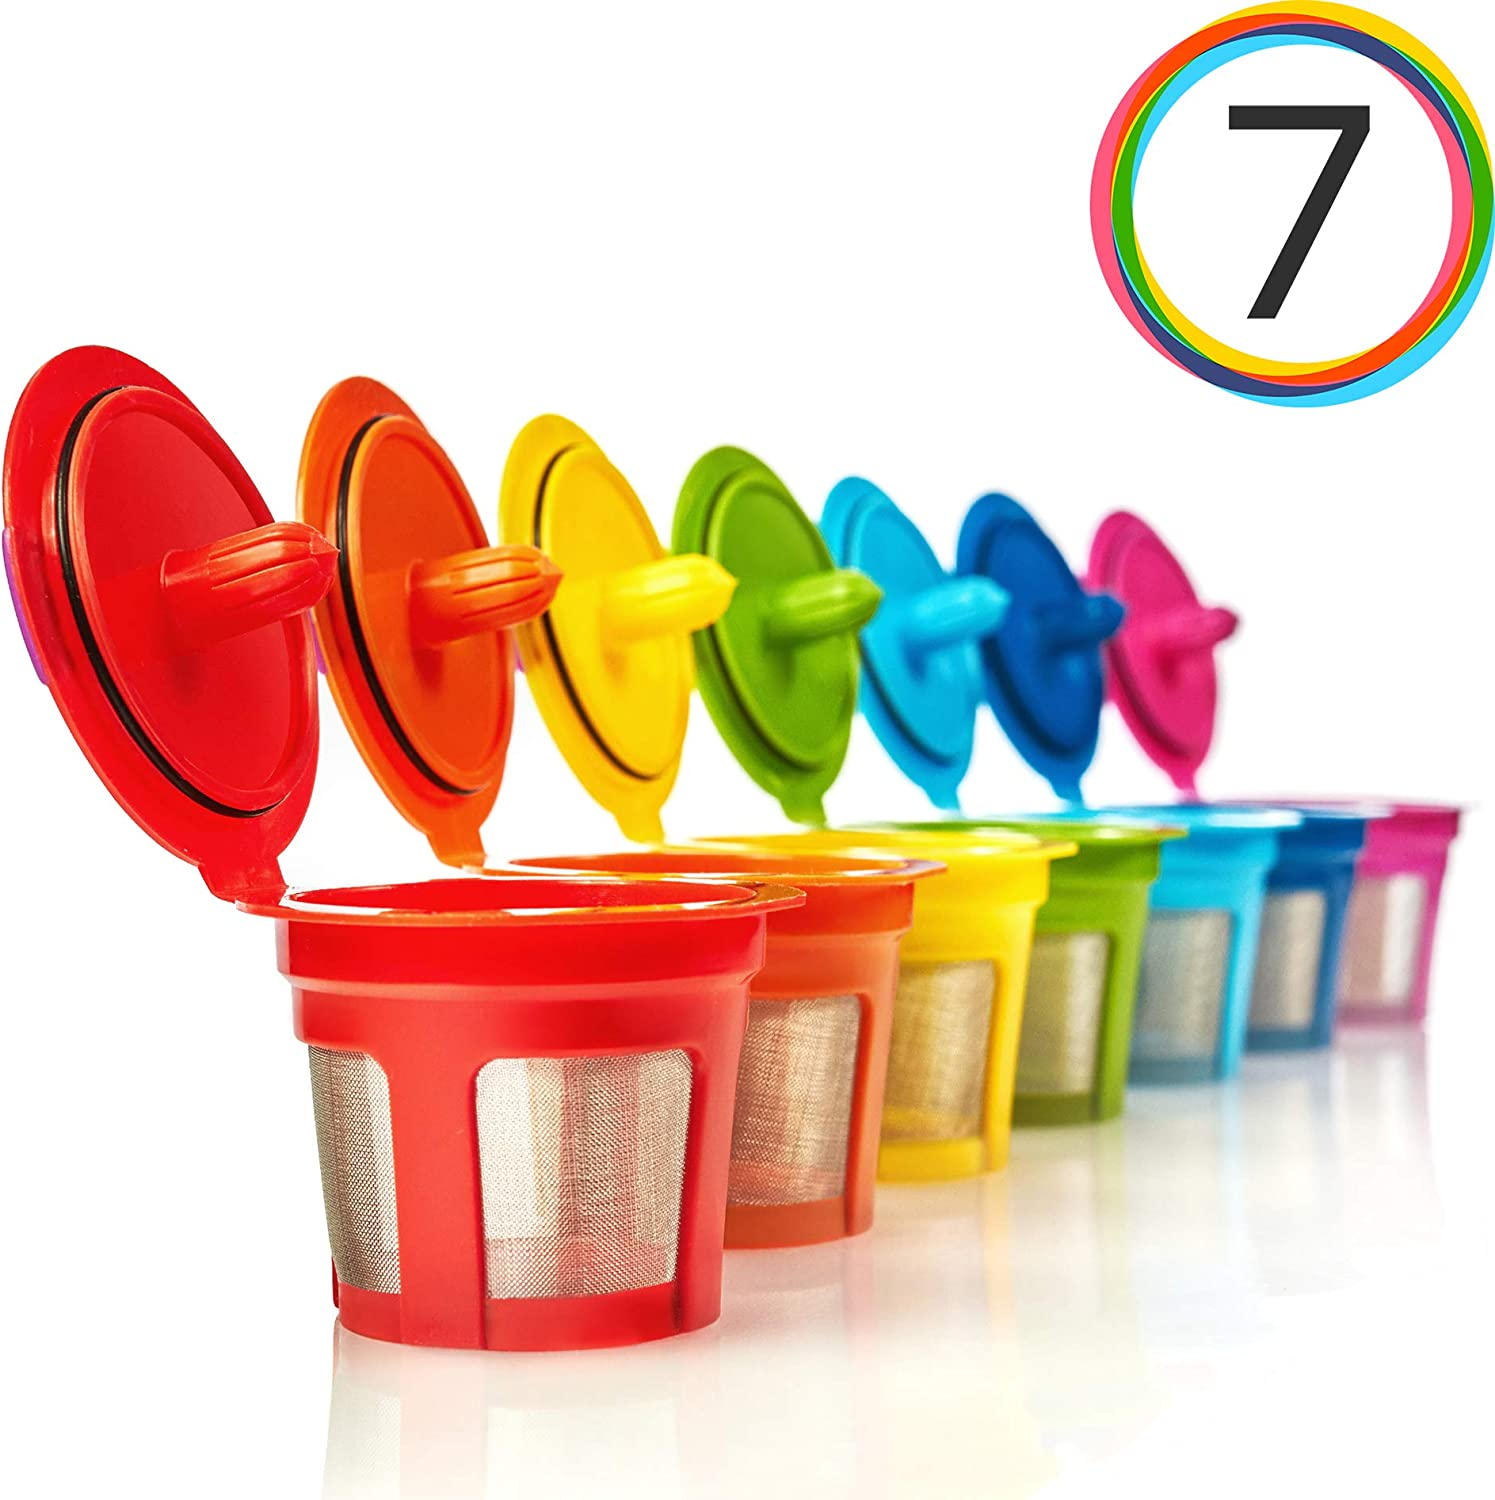 GoodCups 7 Reusable Rainbow Colors K Cups Refillable KCups Coffee Filters for Keurig 2.0, K200, K250, K300, K350, K400, K450, K460, K500, K550, K560 and 1.0 Brewers 71XKwzRuMgL